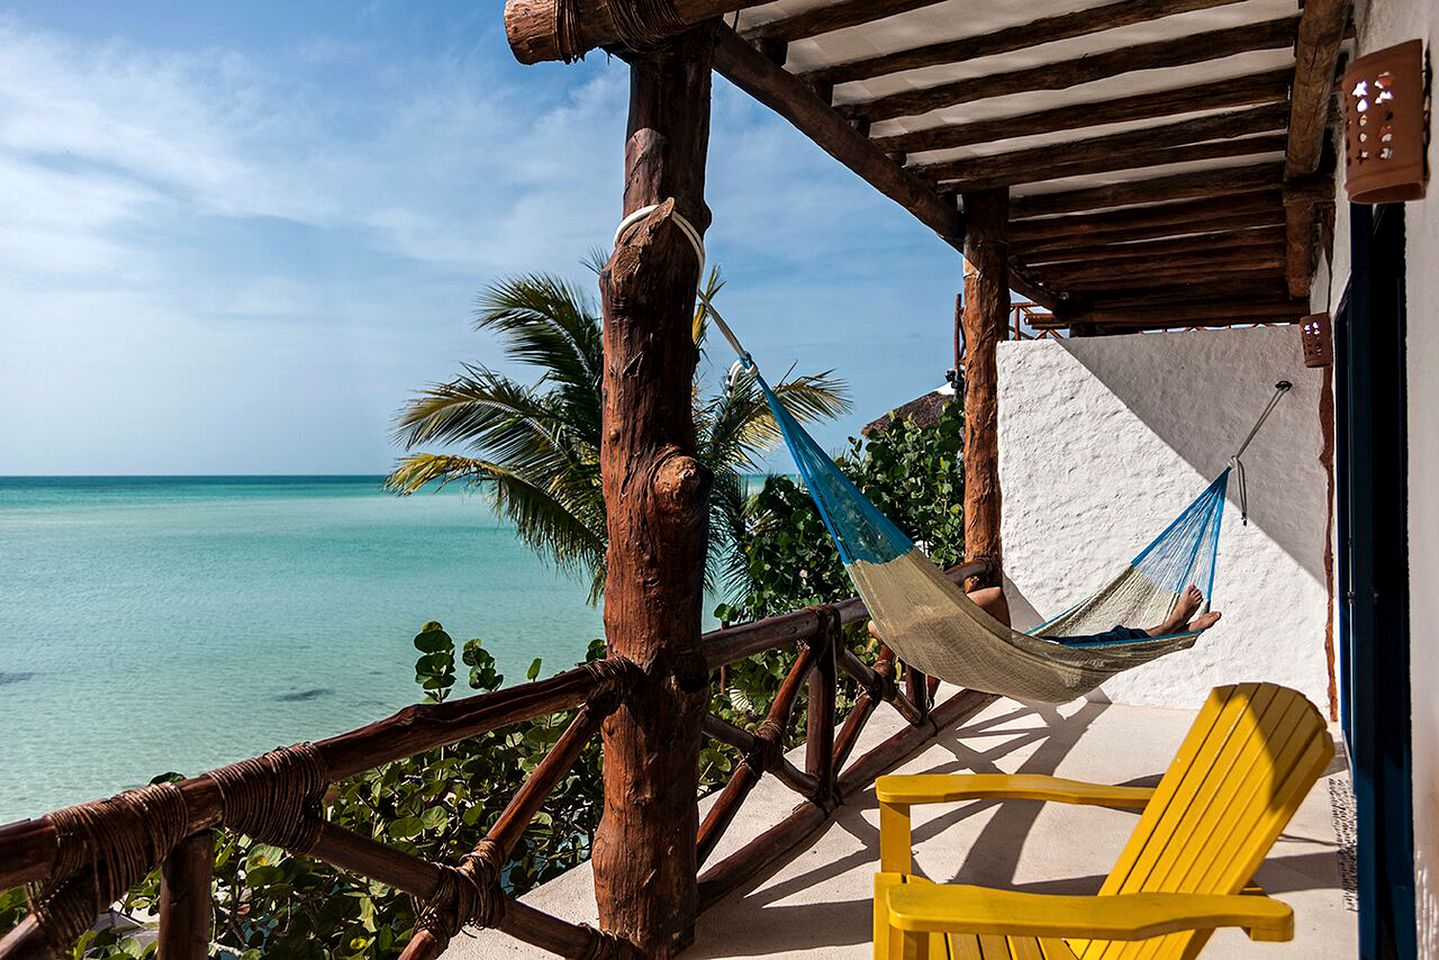 Nature Lodges (Holbox Island, Quintana Roo, Mexico)